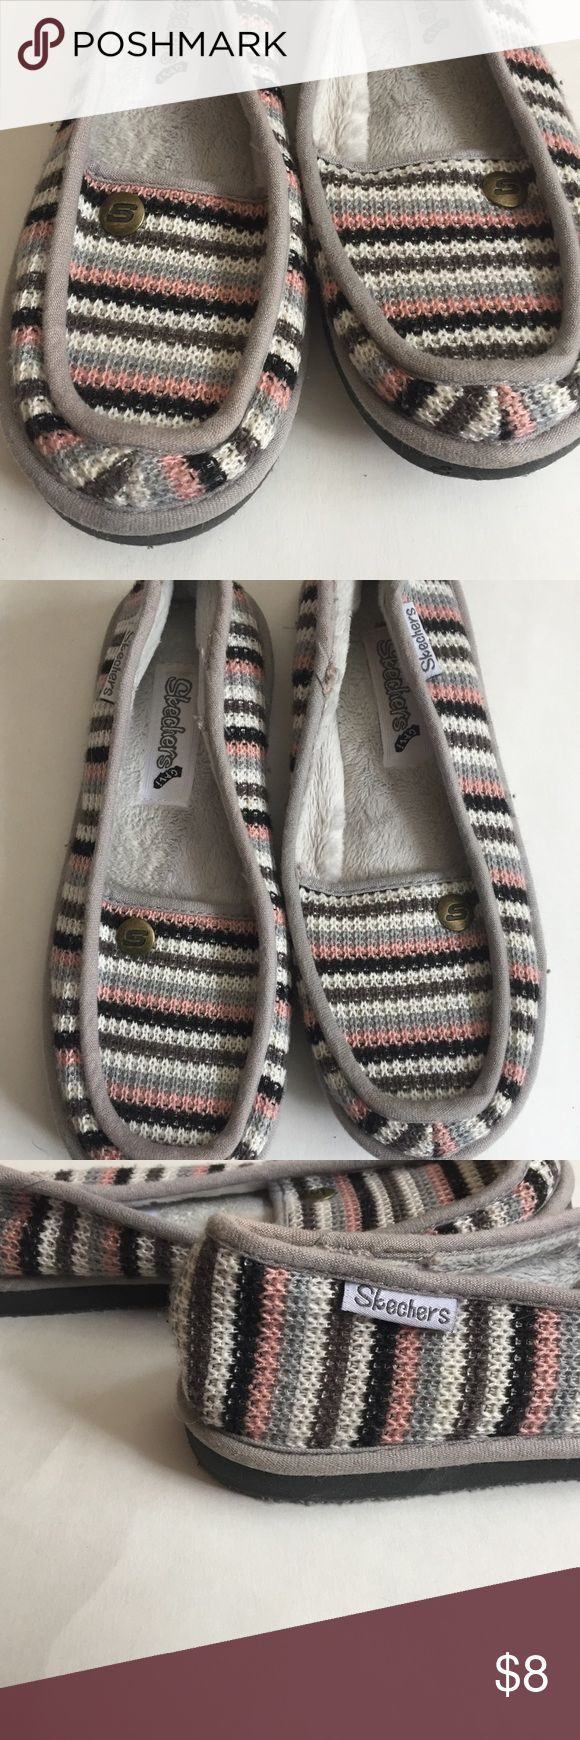 """Sketchers Slippers size 7 Pre-owned but in great condition. Faux fur lining. Knitted exterior. 10"""" long Sketchers  Shoes Slippers"""